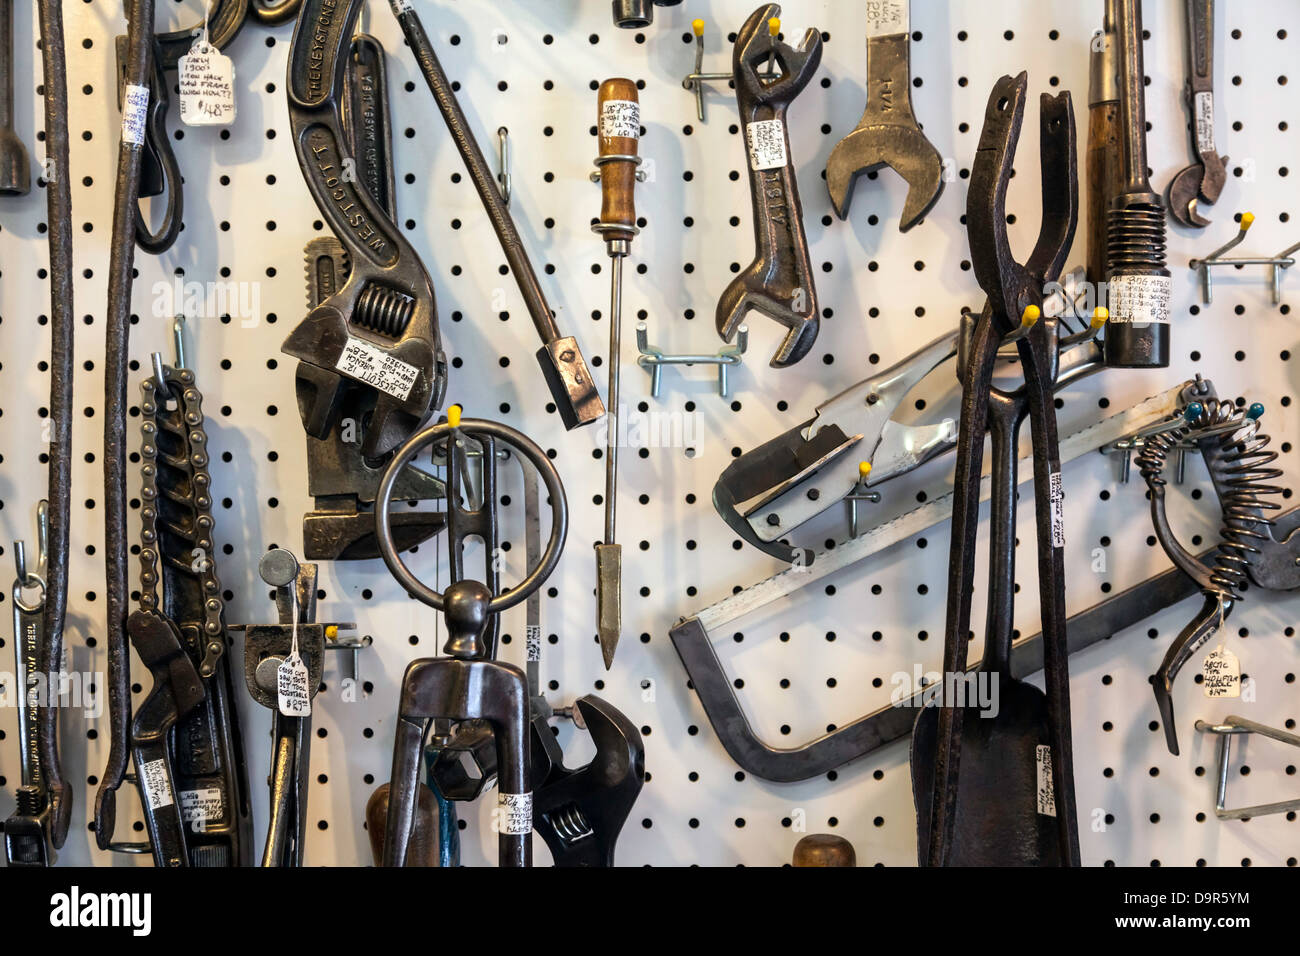 Assorted vintage tools and accessories hanging on a white pegboard. - Stock Image